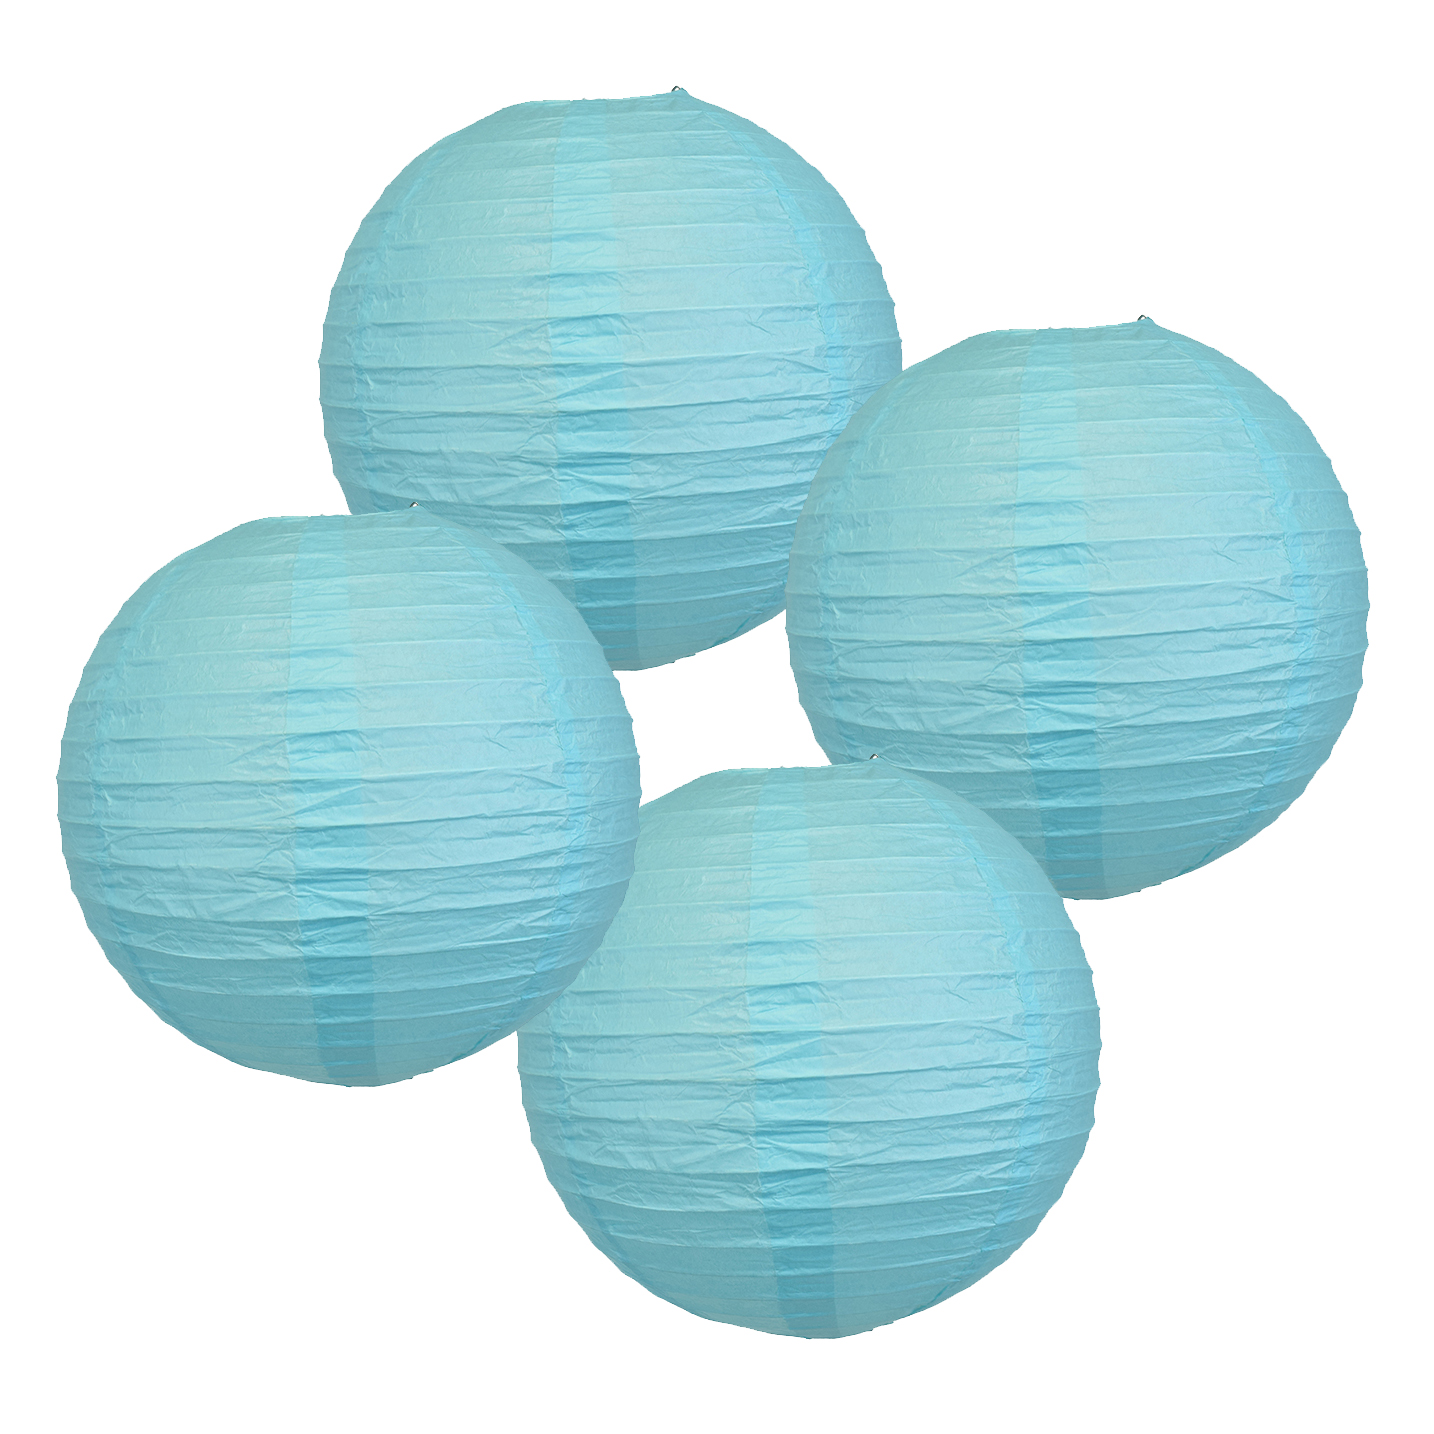 "18"" Baby Blue Paper Lanterns (Set of 4) - Decorative Round Chinese/Japanese Paper Lanterns for Birthday Parties, Weddings, Baby Showers, and Life Celebrations!"